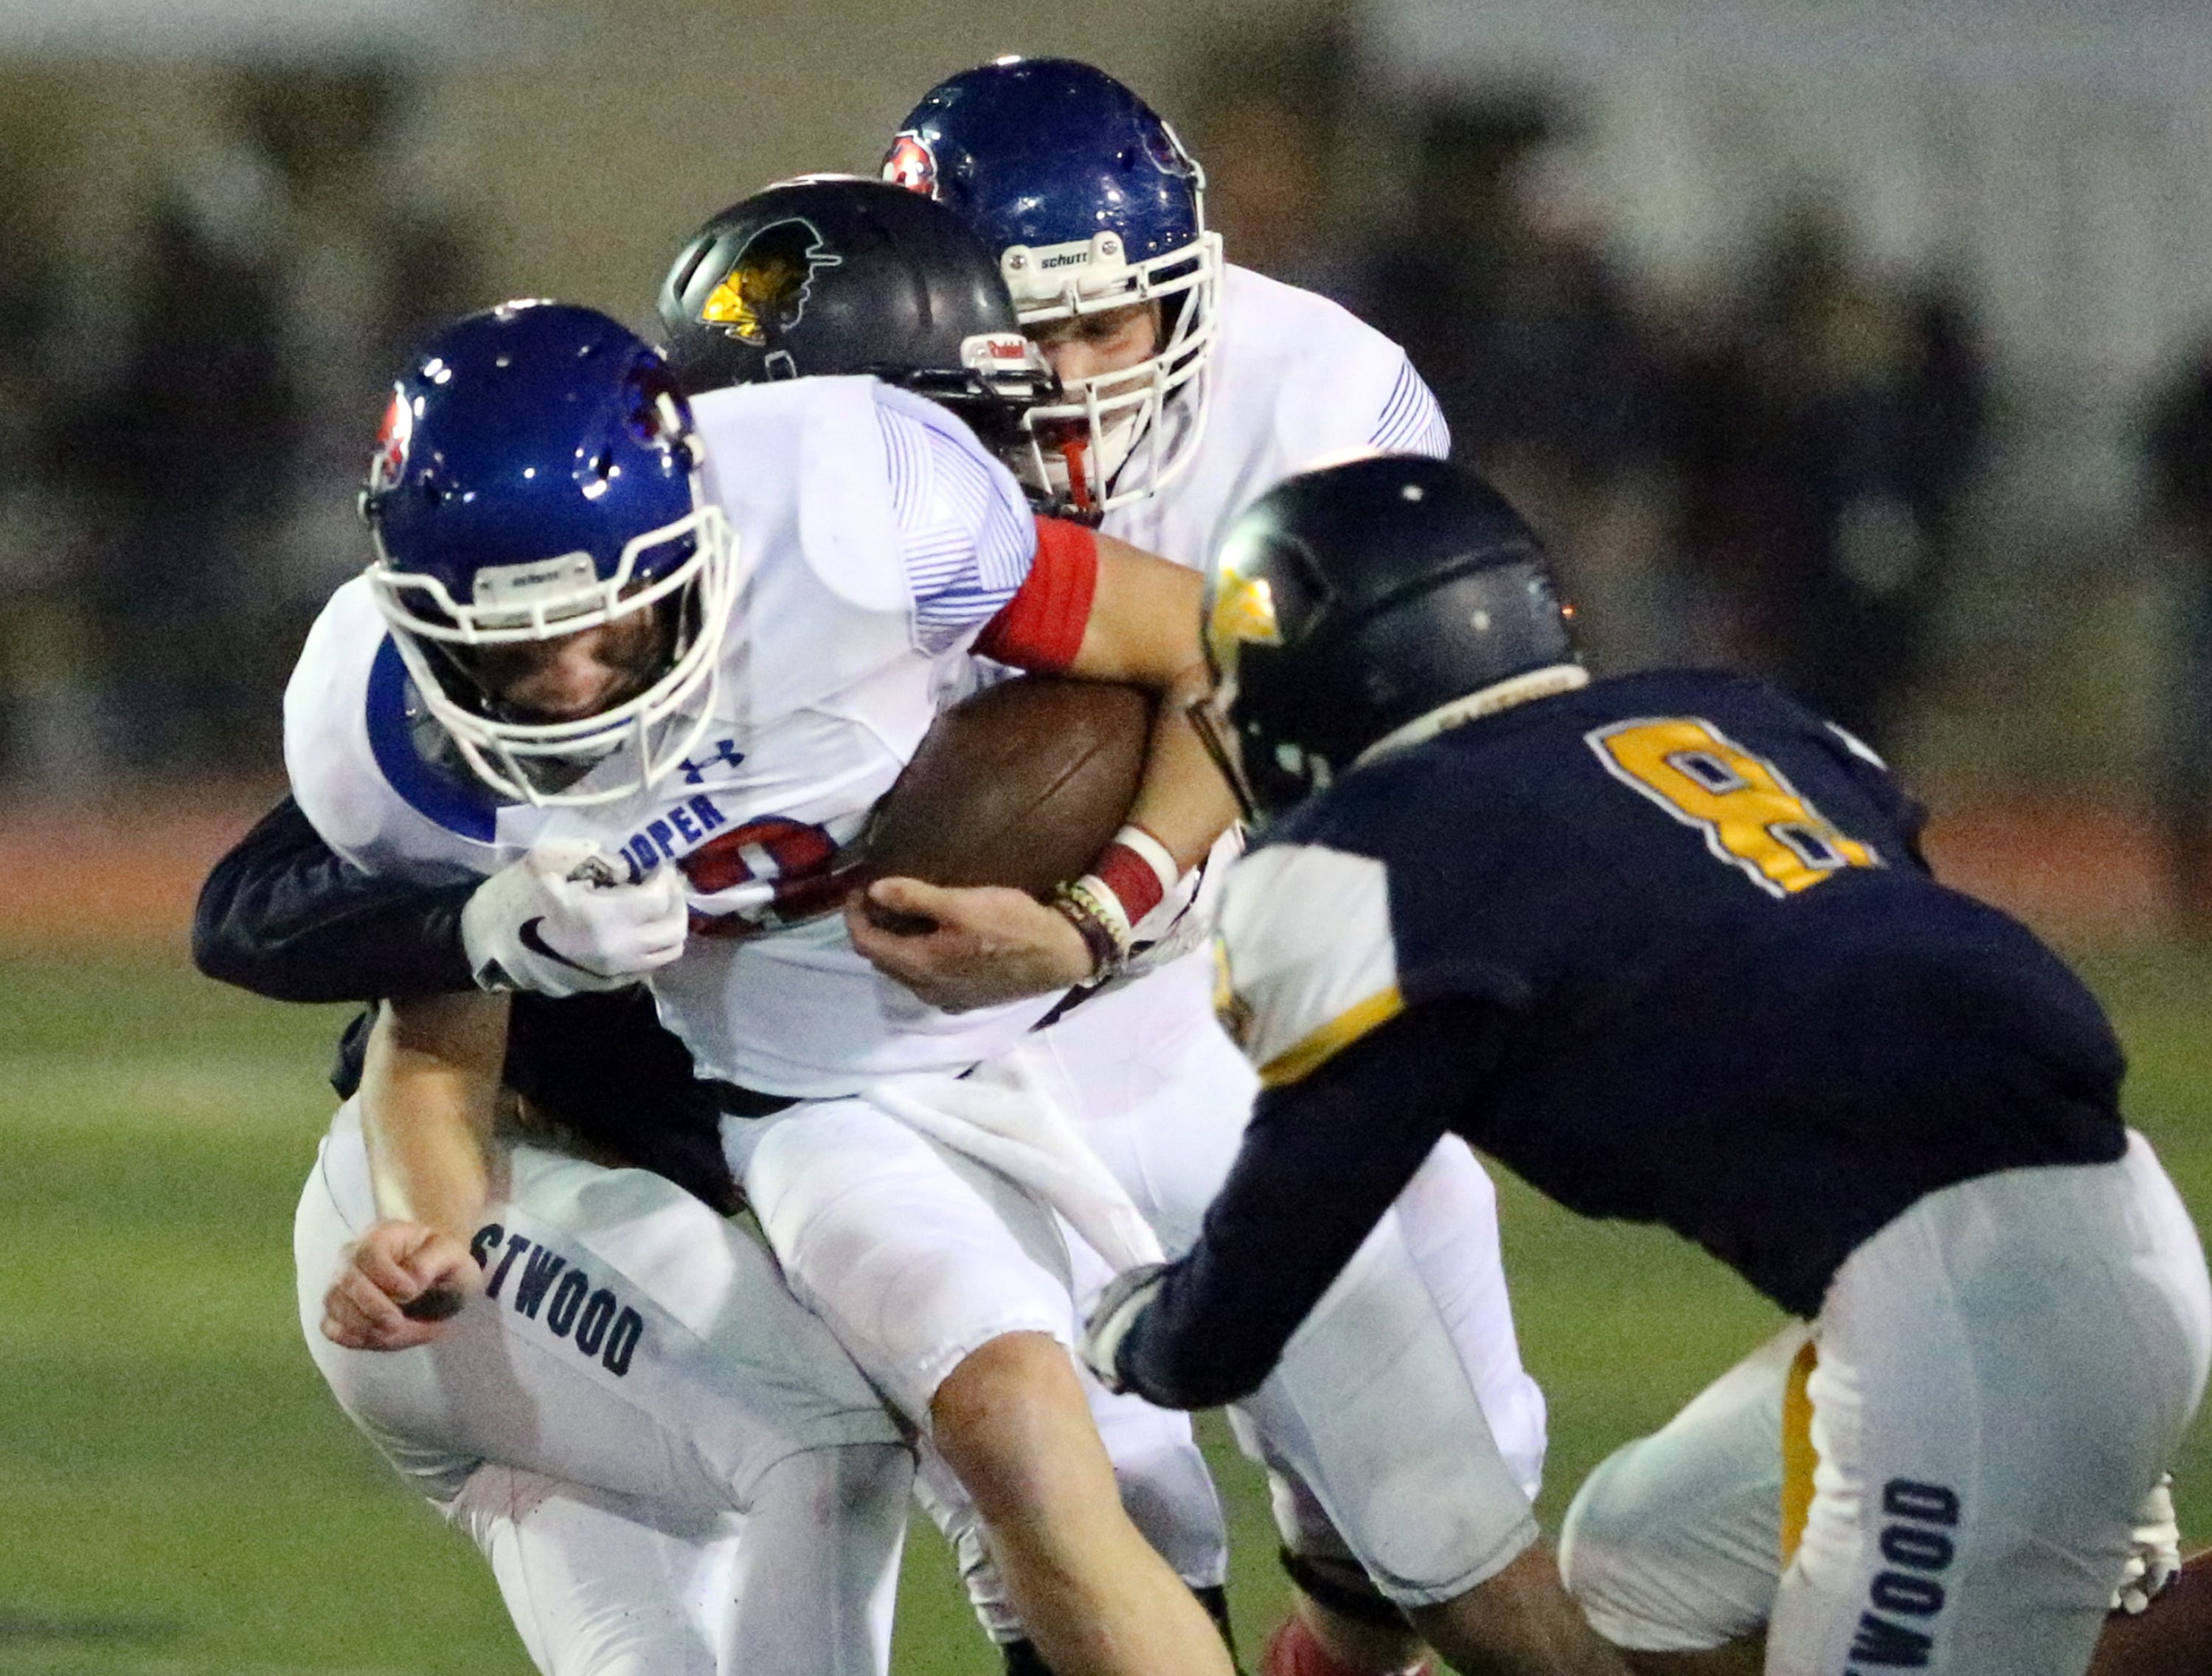 Abilene Cooper running back Noah Garcia gets the call up the middle against Eastwood Friday night.